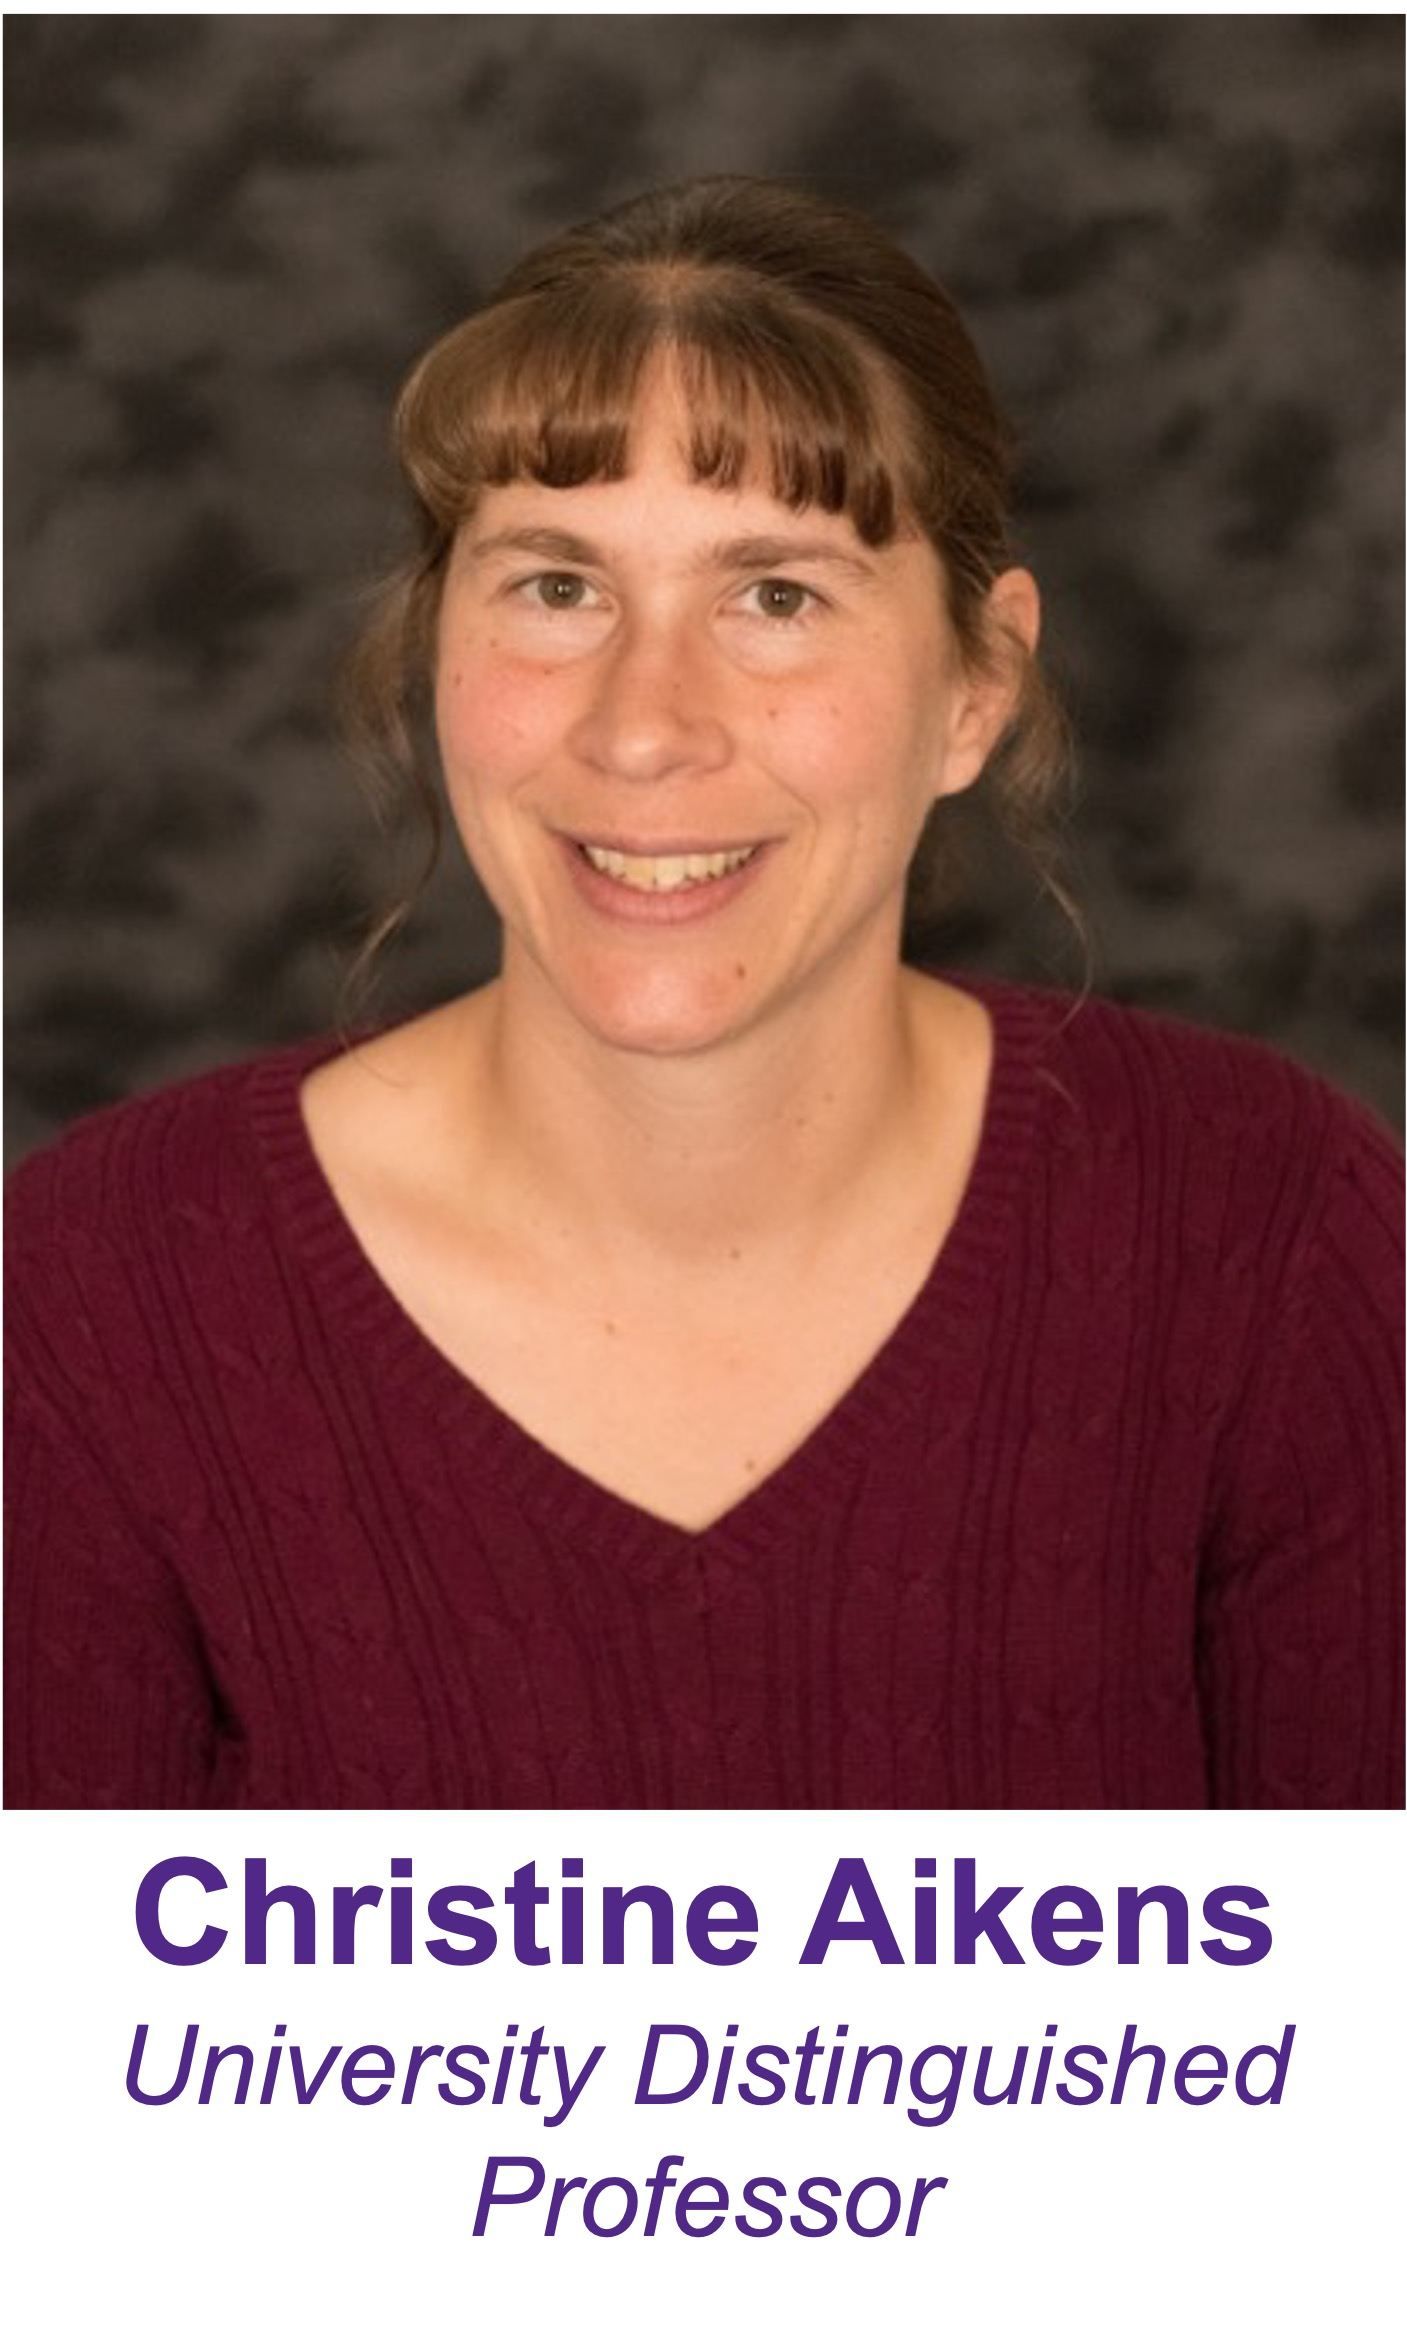 Professor Christine Aikens